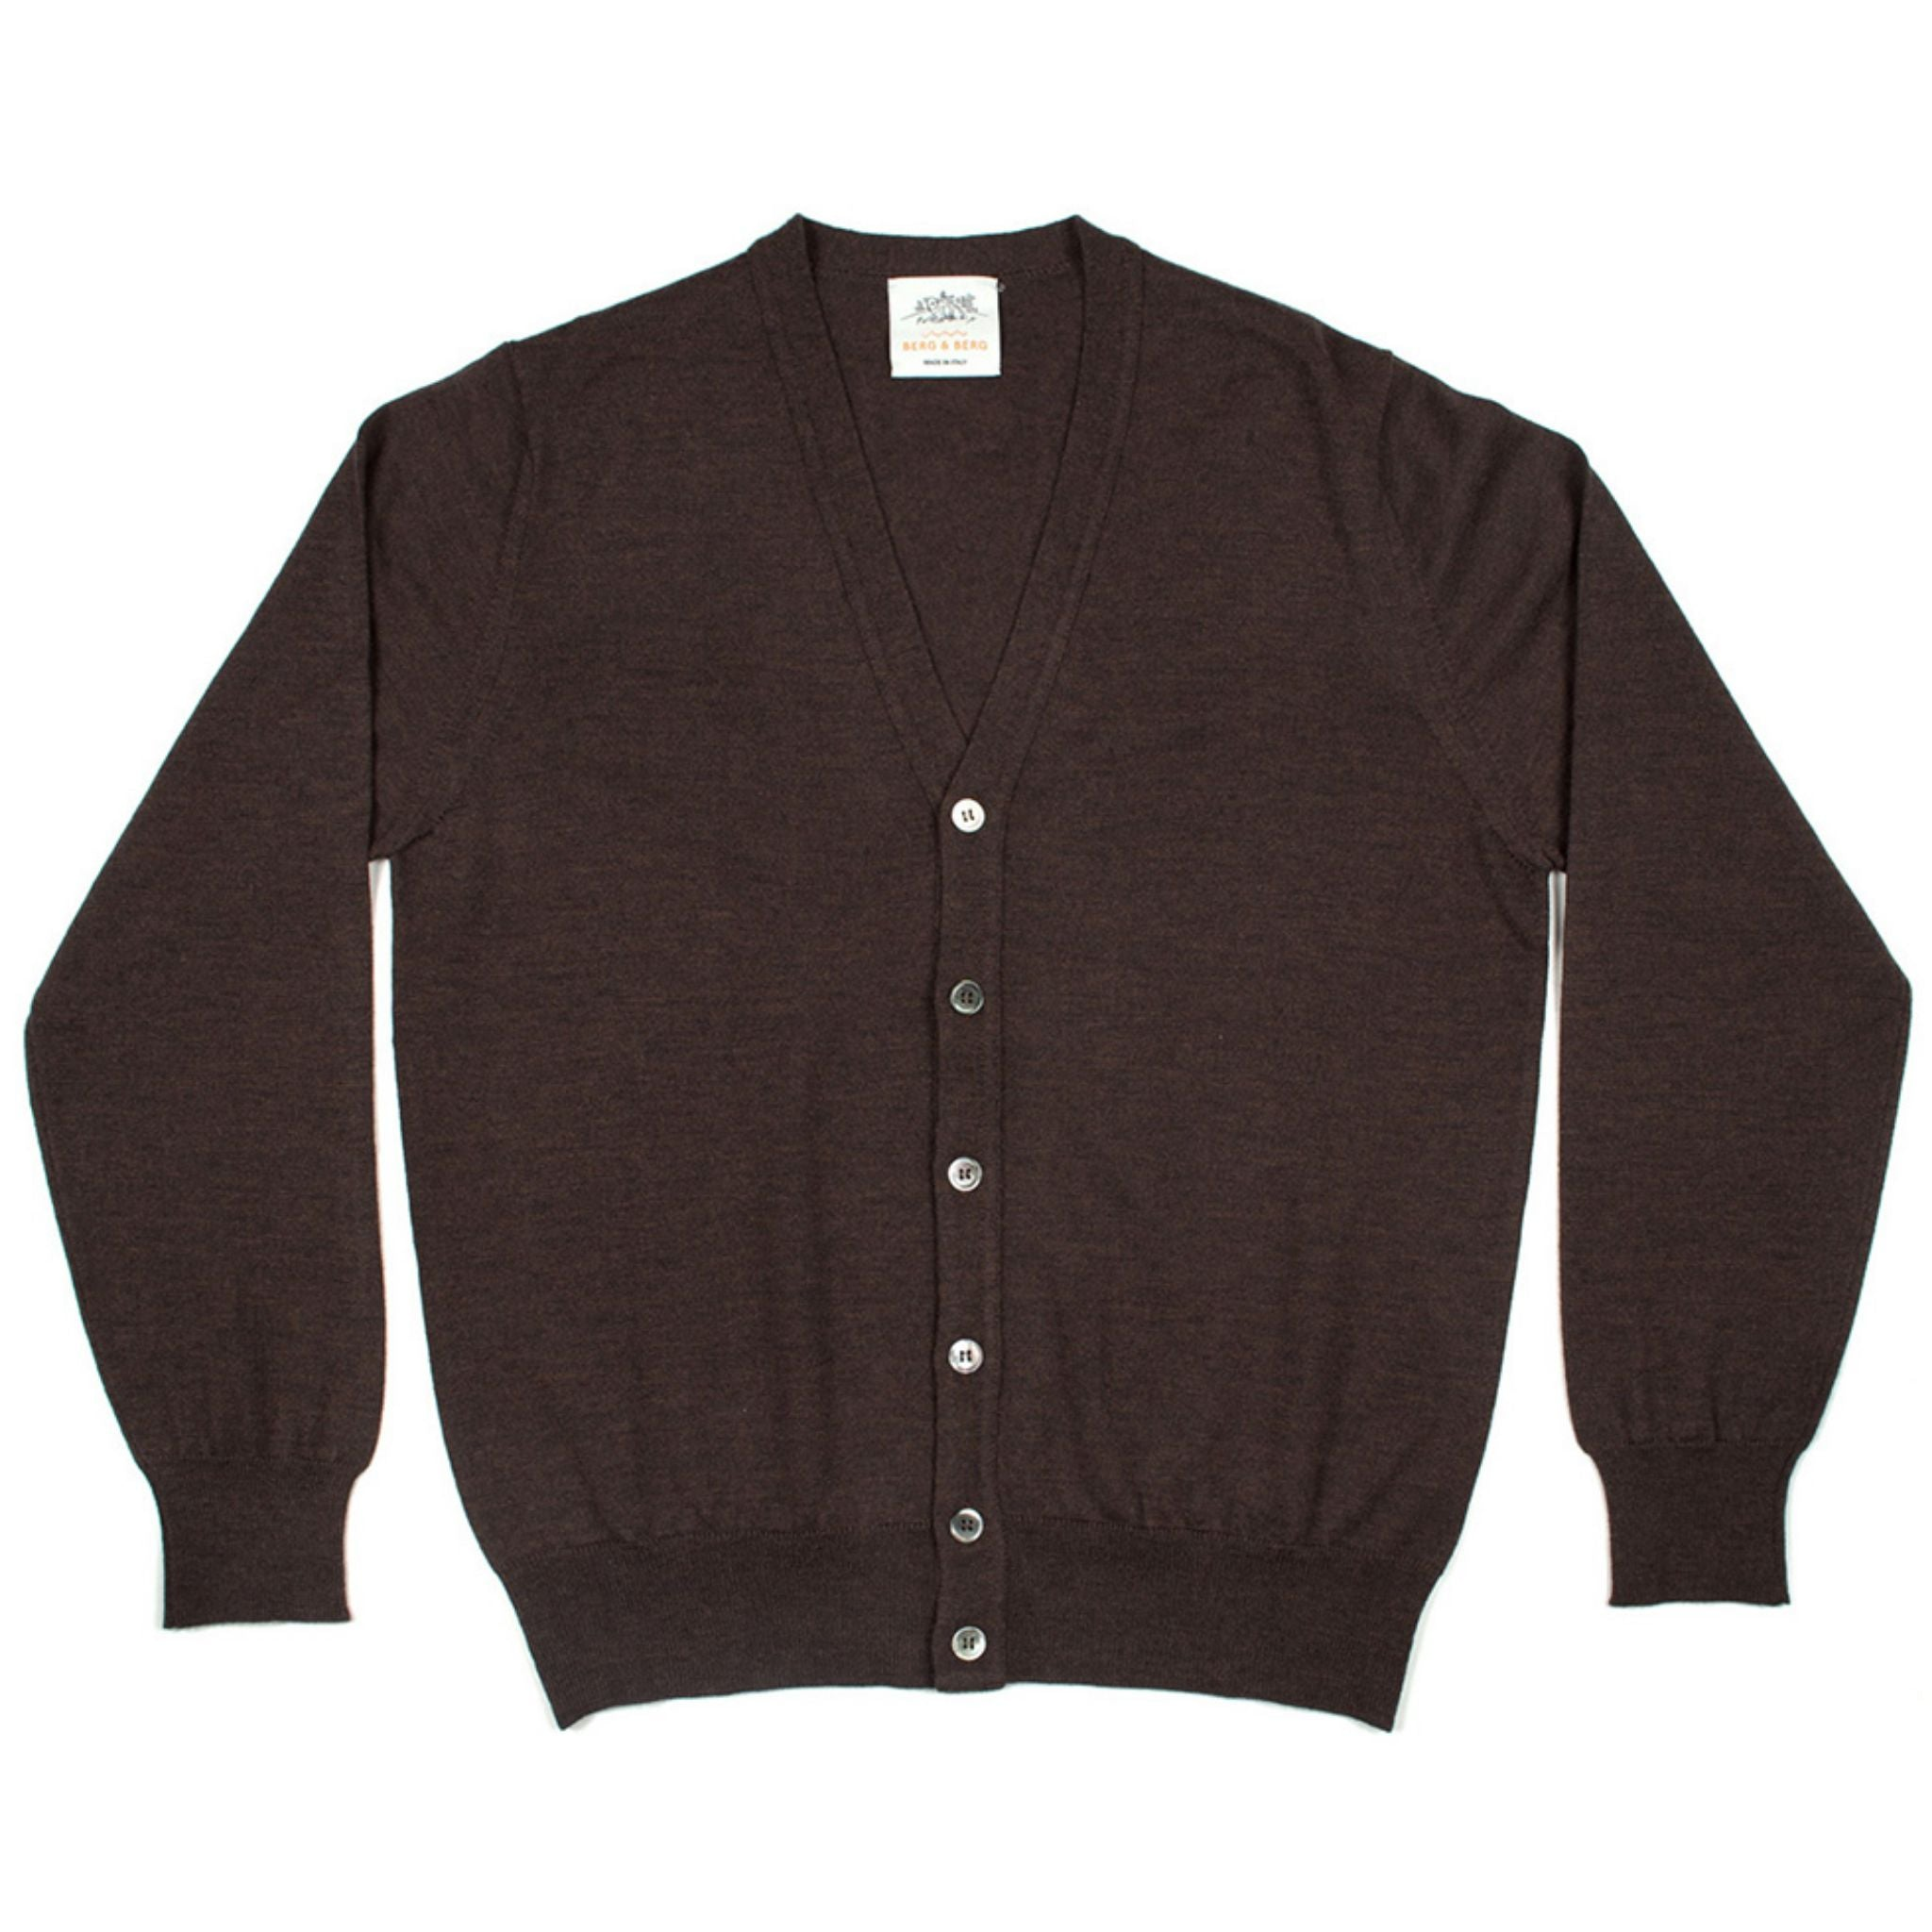 brown-merino-wool-cardigan-bergberg